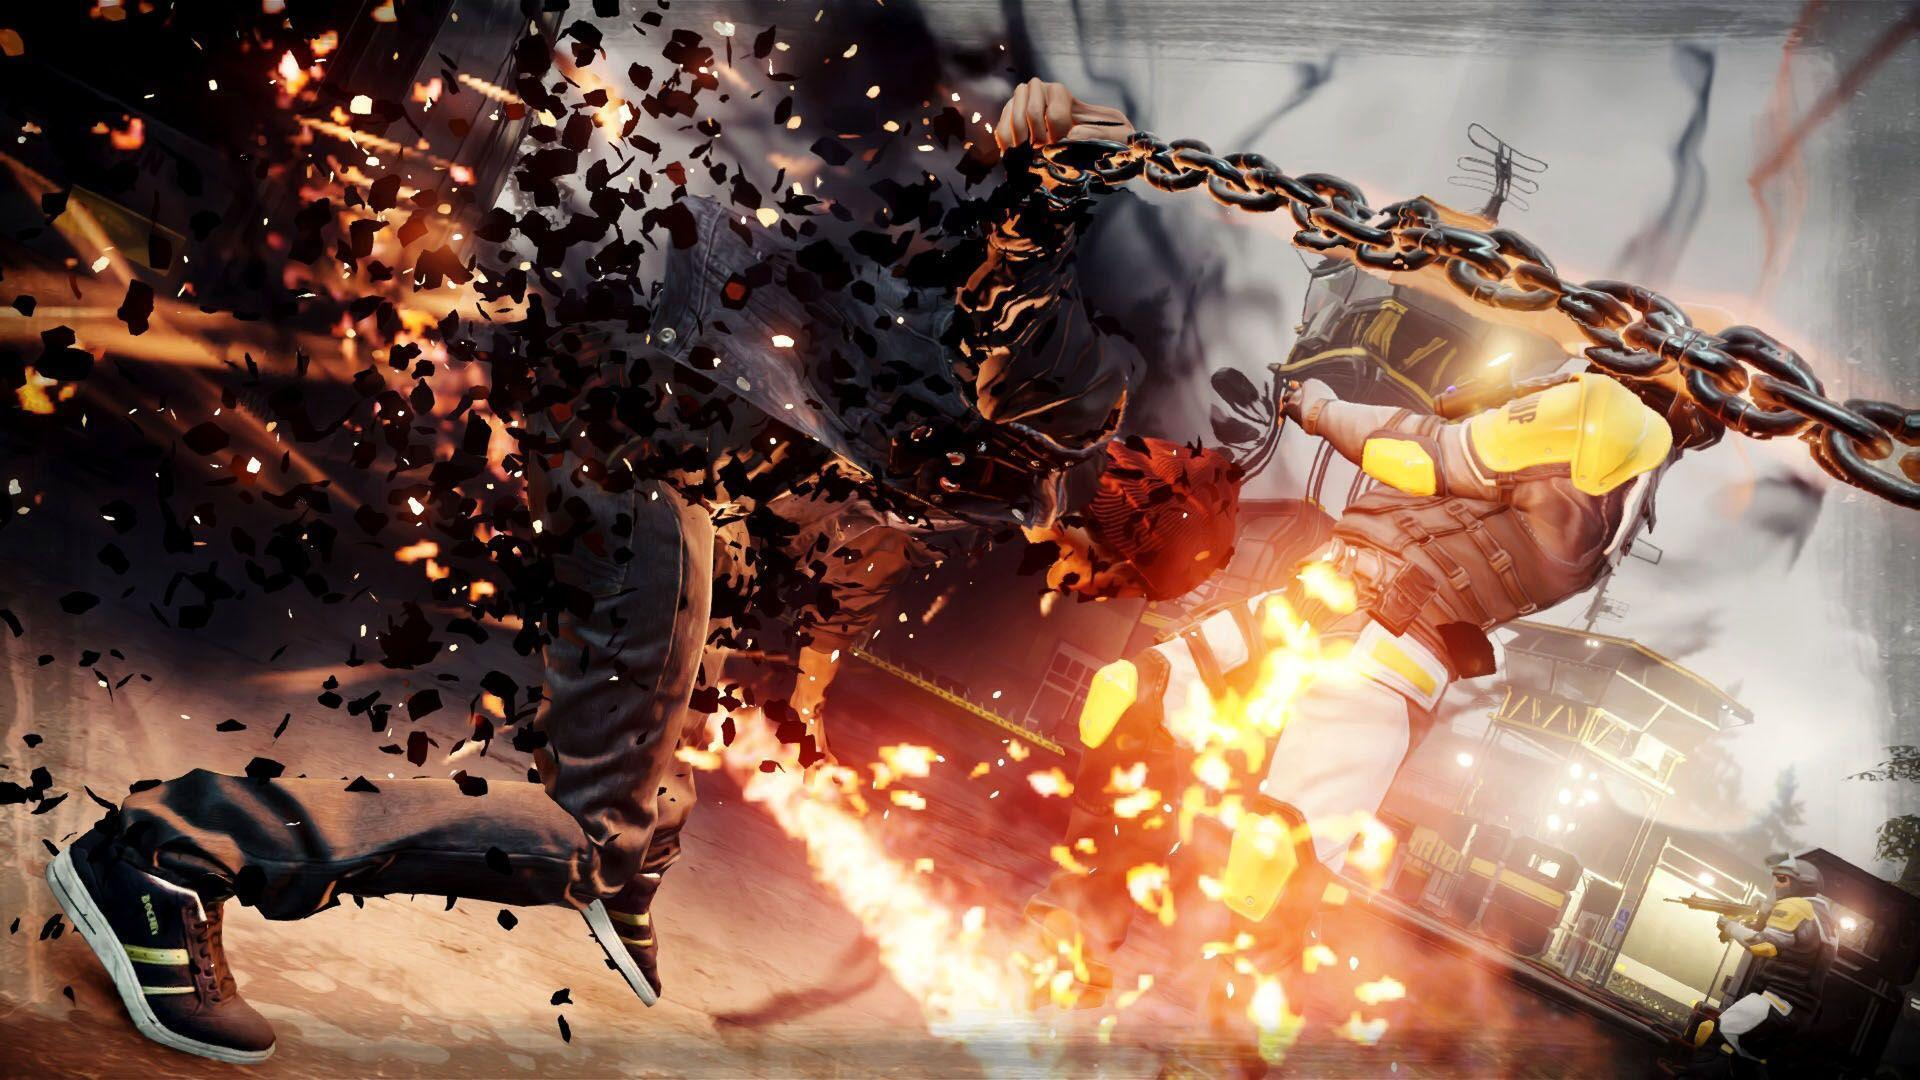 Delsin fighting with Chains, inFAMOUS Second Son - 1920x1080 ...